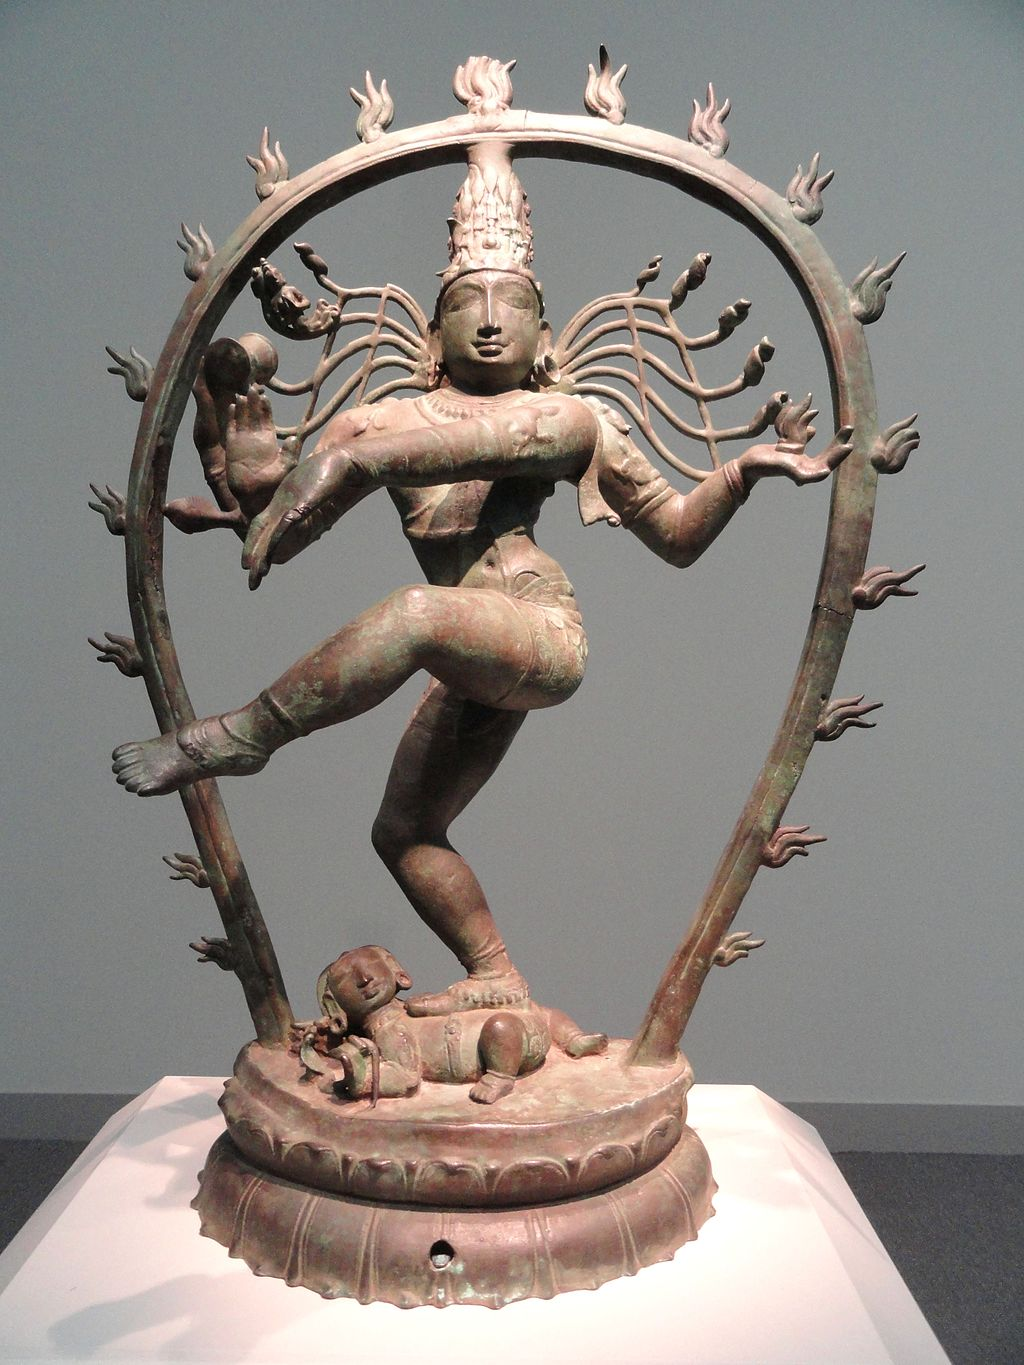 Shiva Nataraja (Lord of the Dance), Chola dynasty, c. 990 AD, Tamil Nadu, India, bronze - Freer Gallery of Art - DSC05147